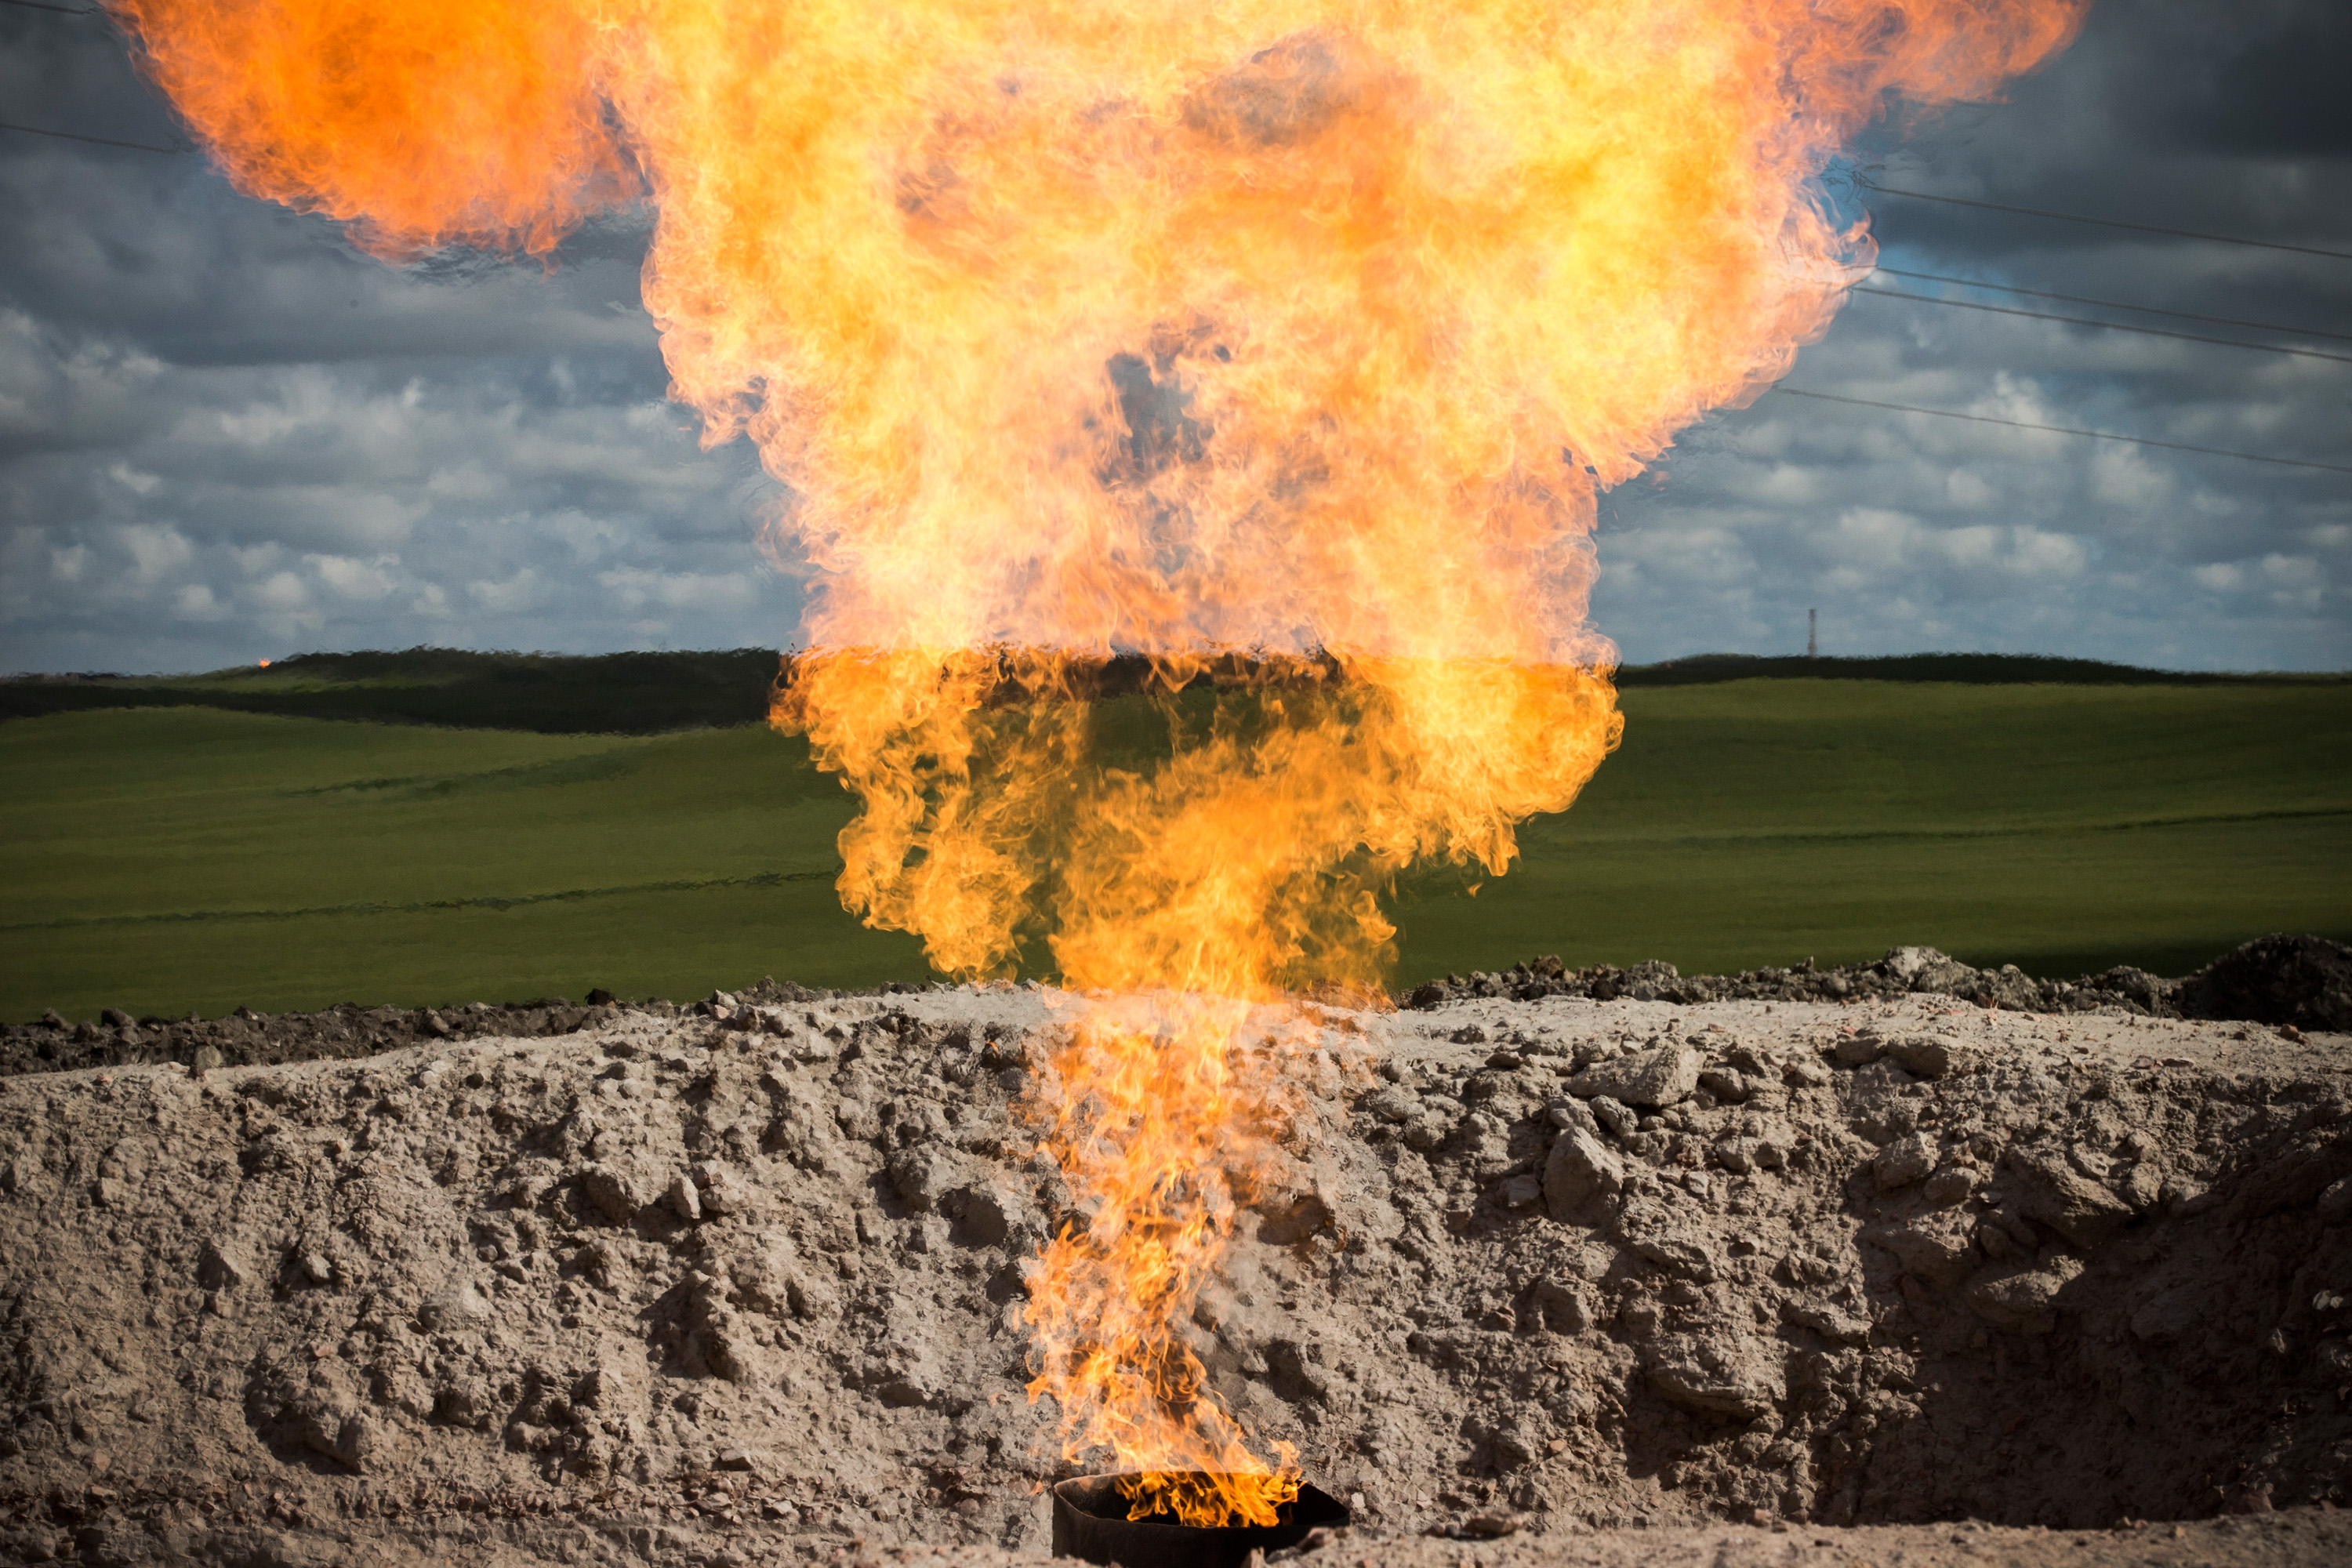 A gas flare is seen at an oil well site on July 26, 2013 outside Williston, North Dakota. Gas flares are created when excess flammable gases are released by pressure release valves during the drilling for oil and natural gas.